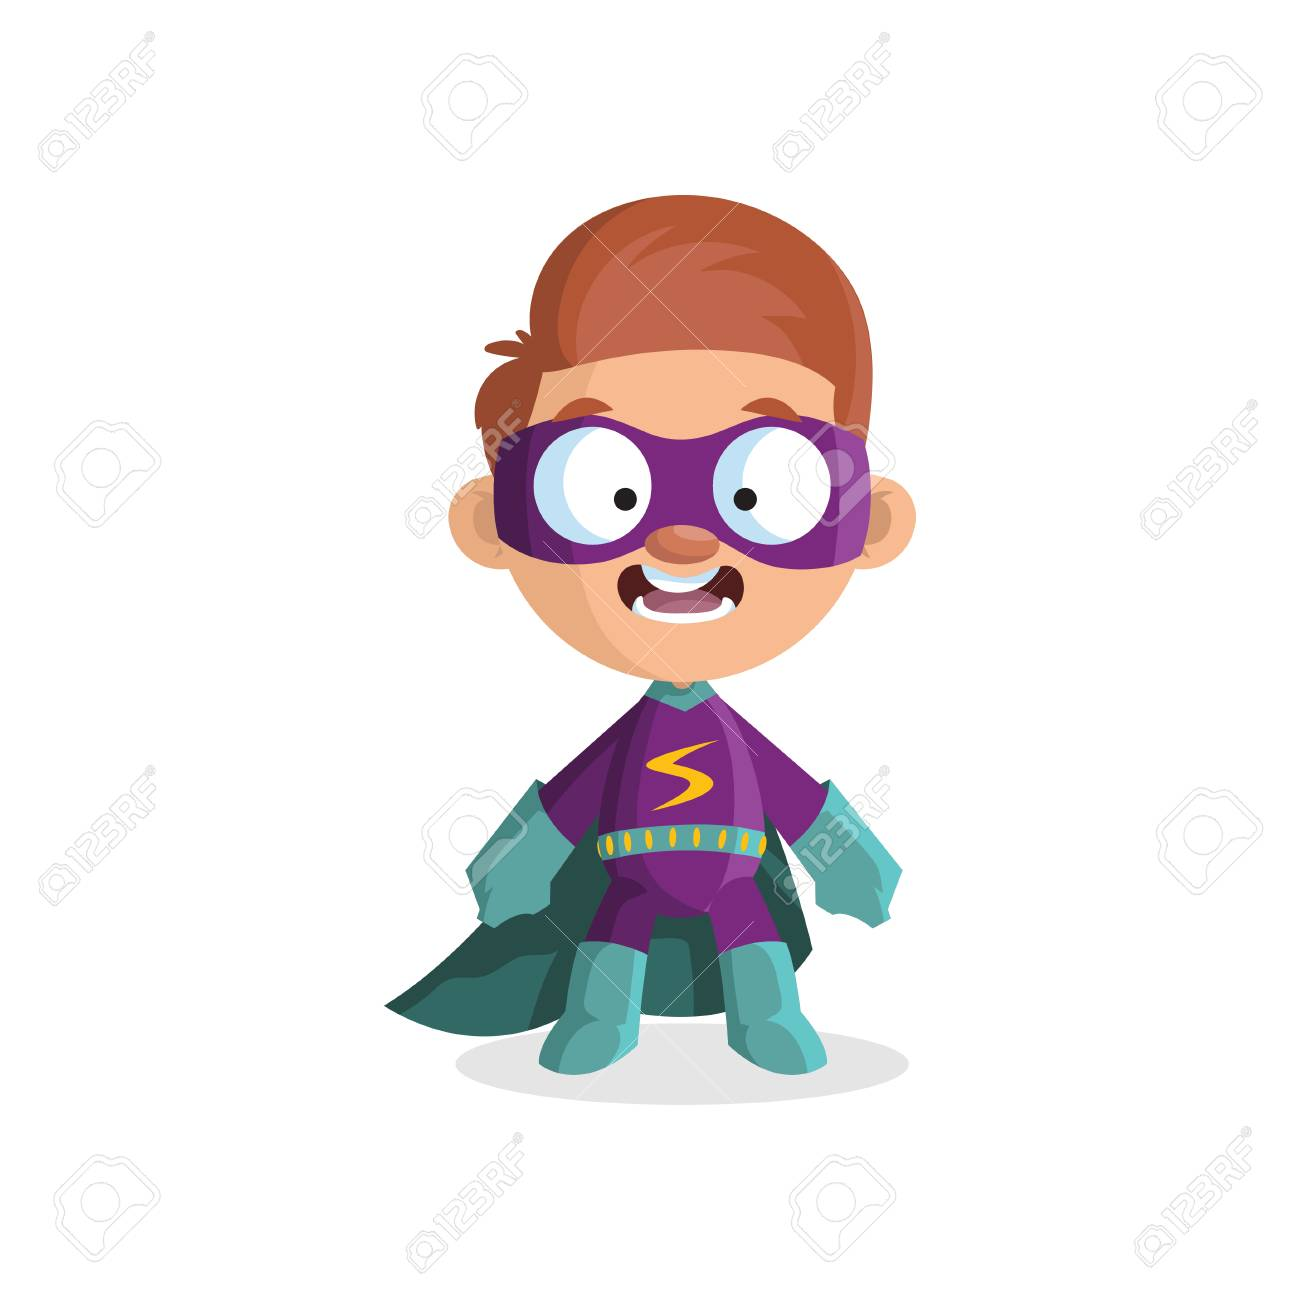 Cute funny boy character in colorful superhero costume. - 91383673